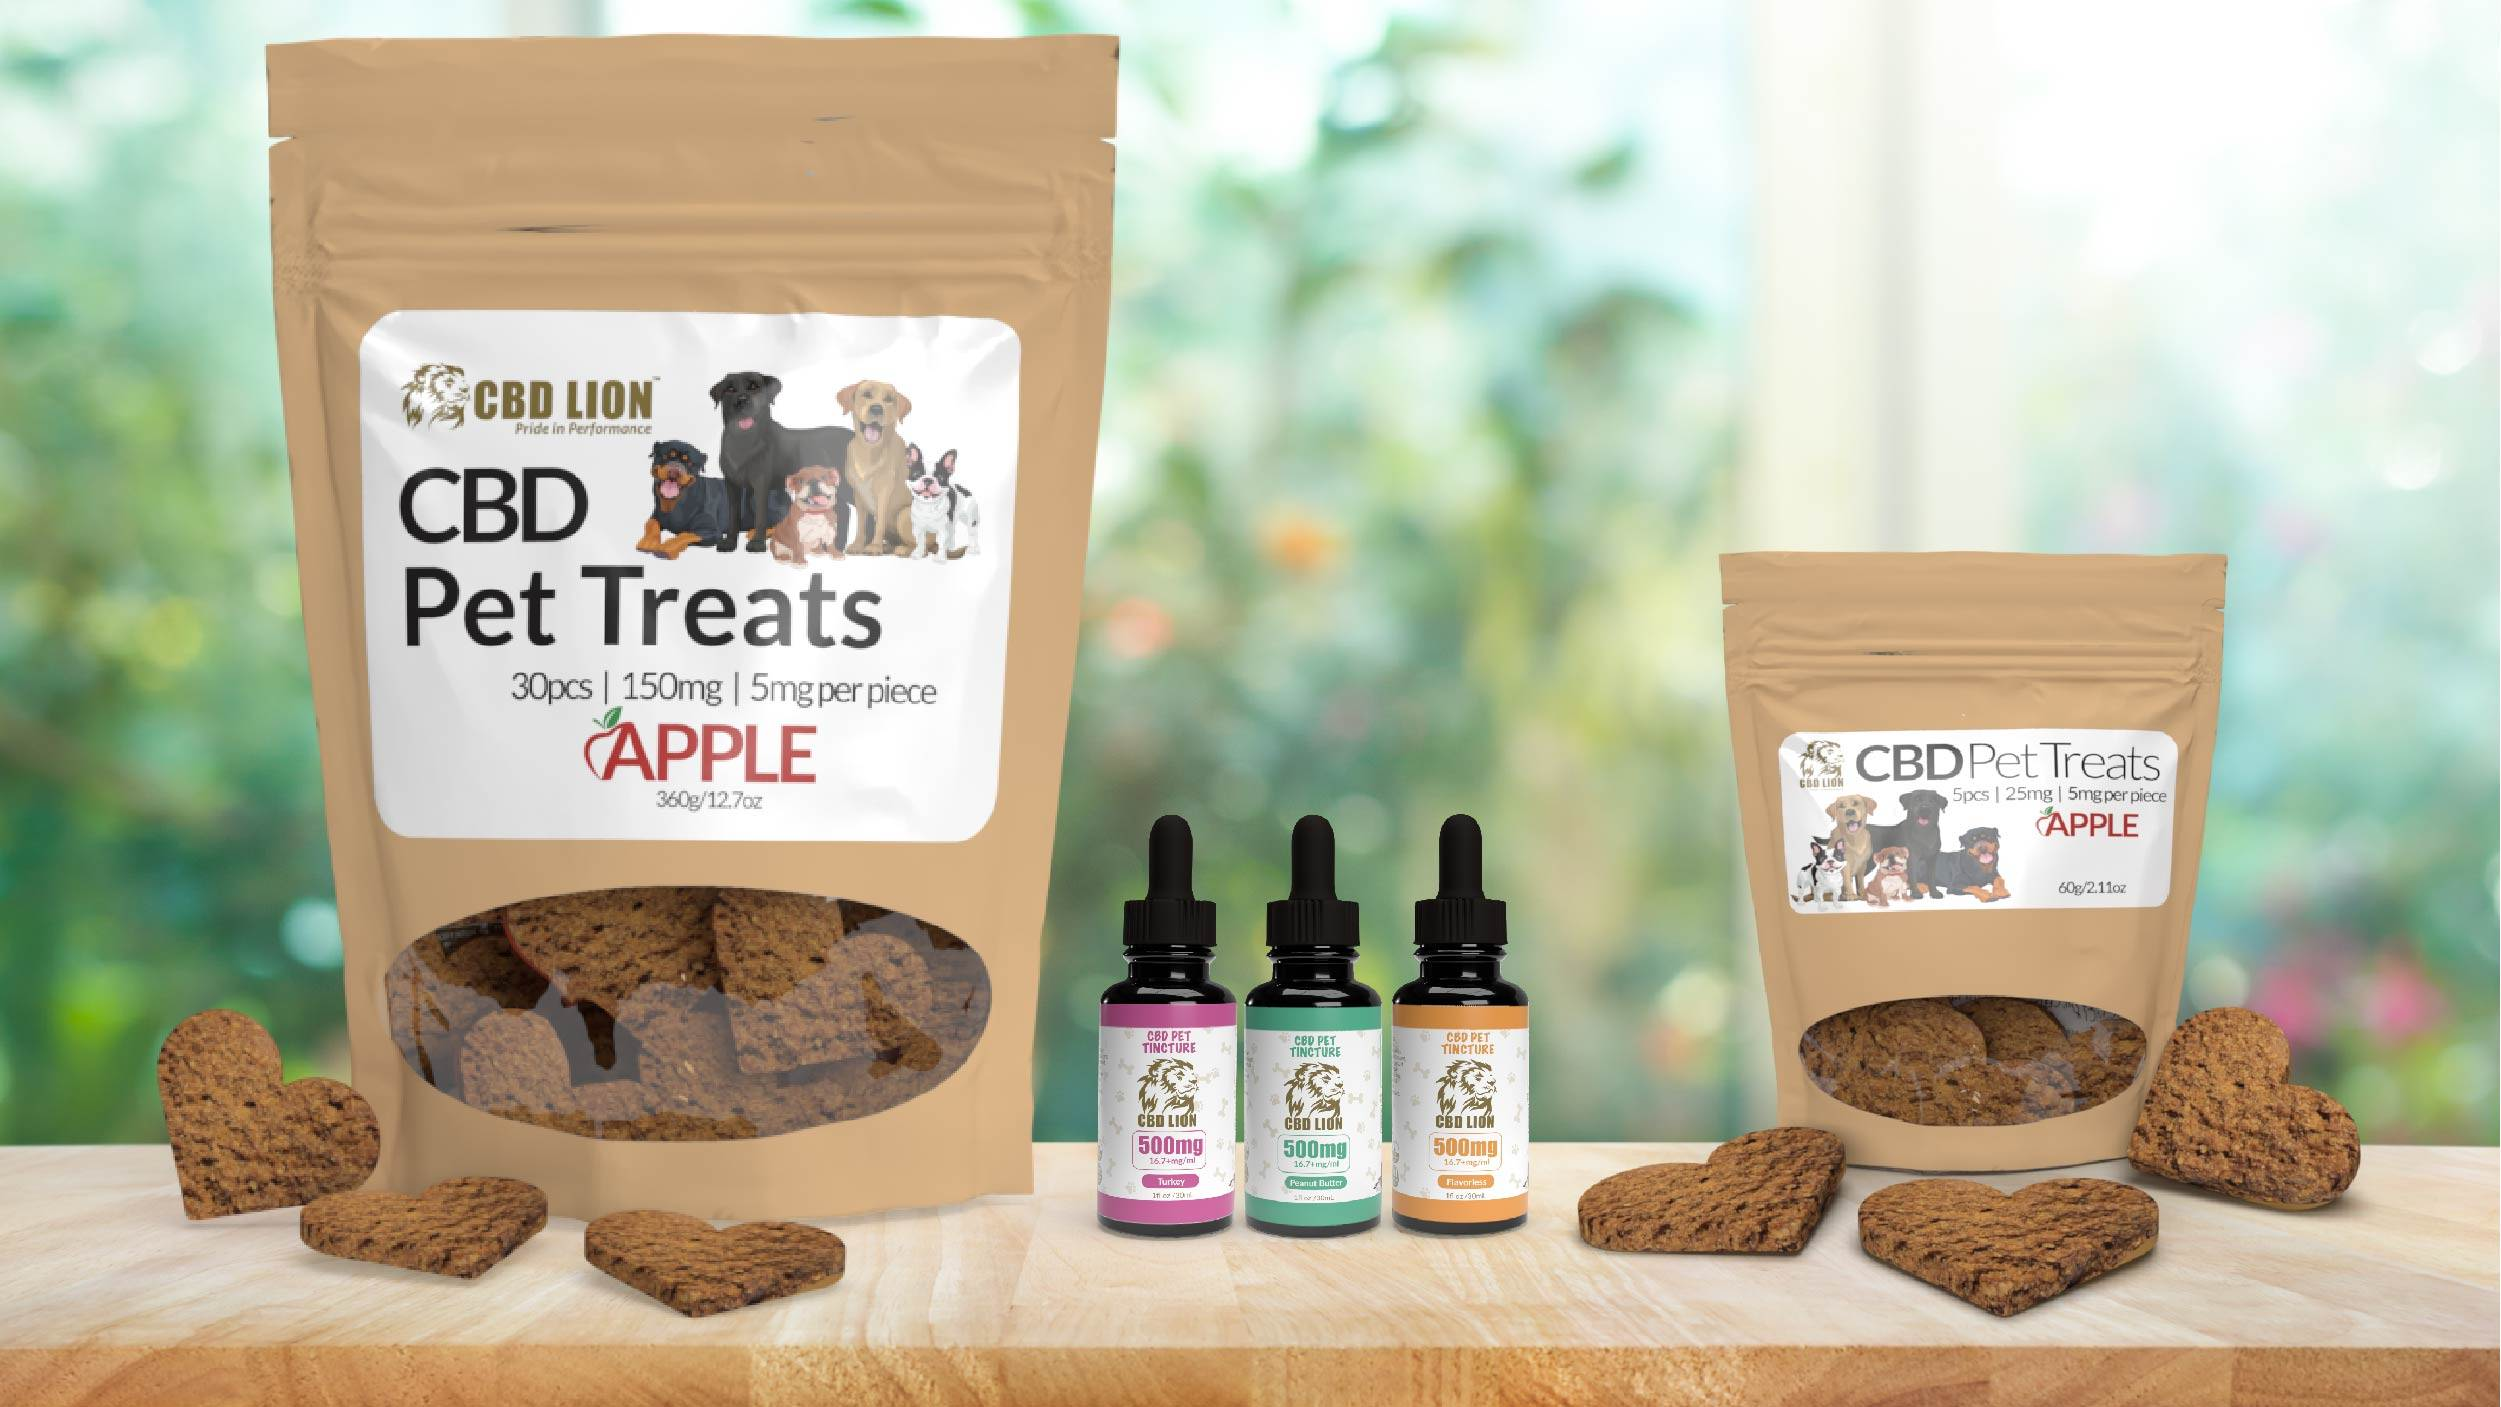 CBD LION's CBD oil and treats for dogs